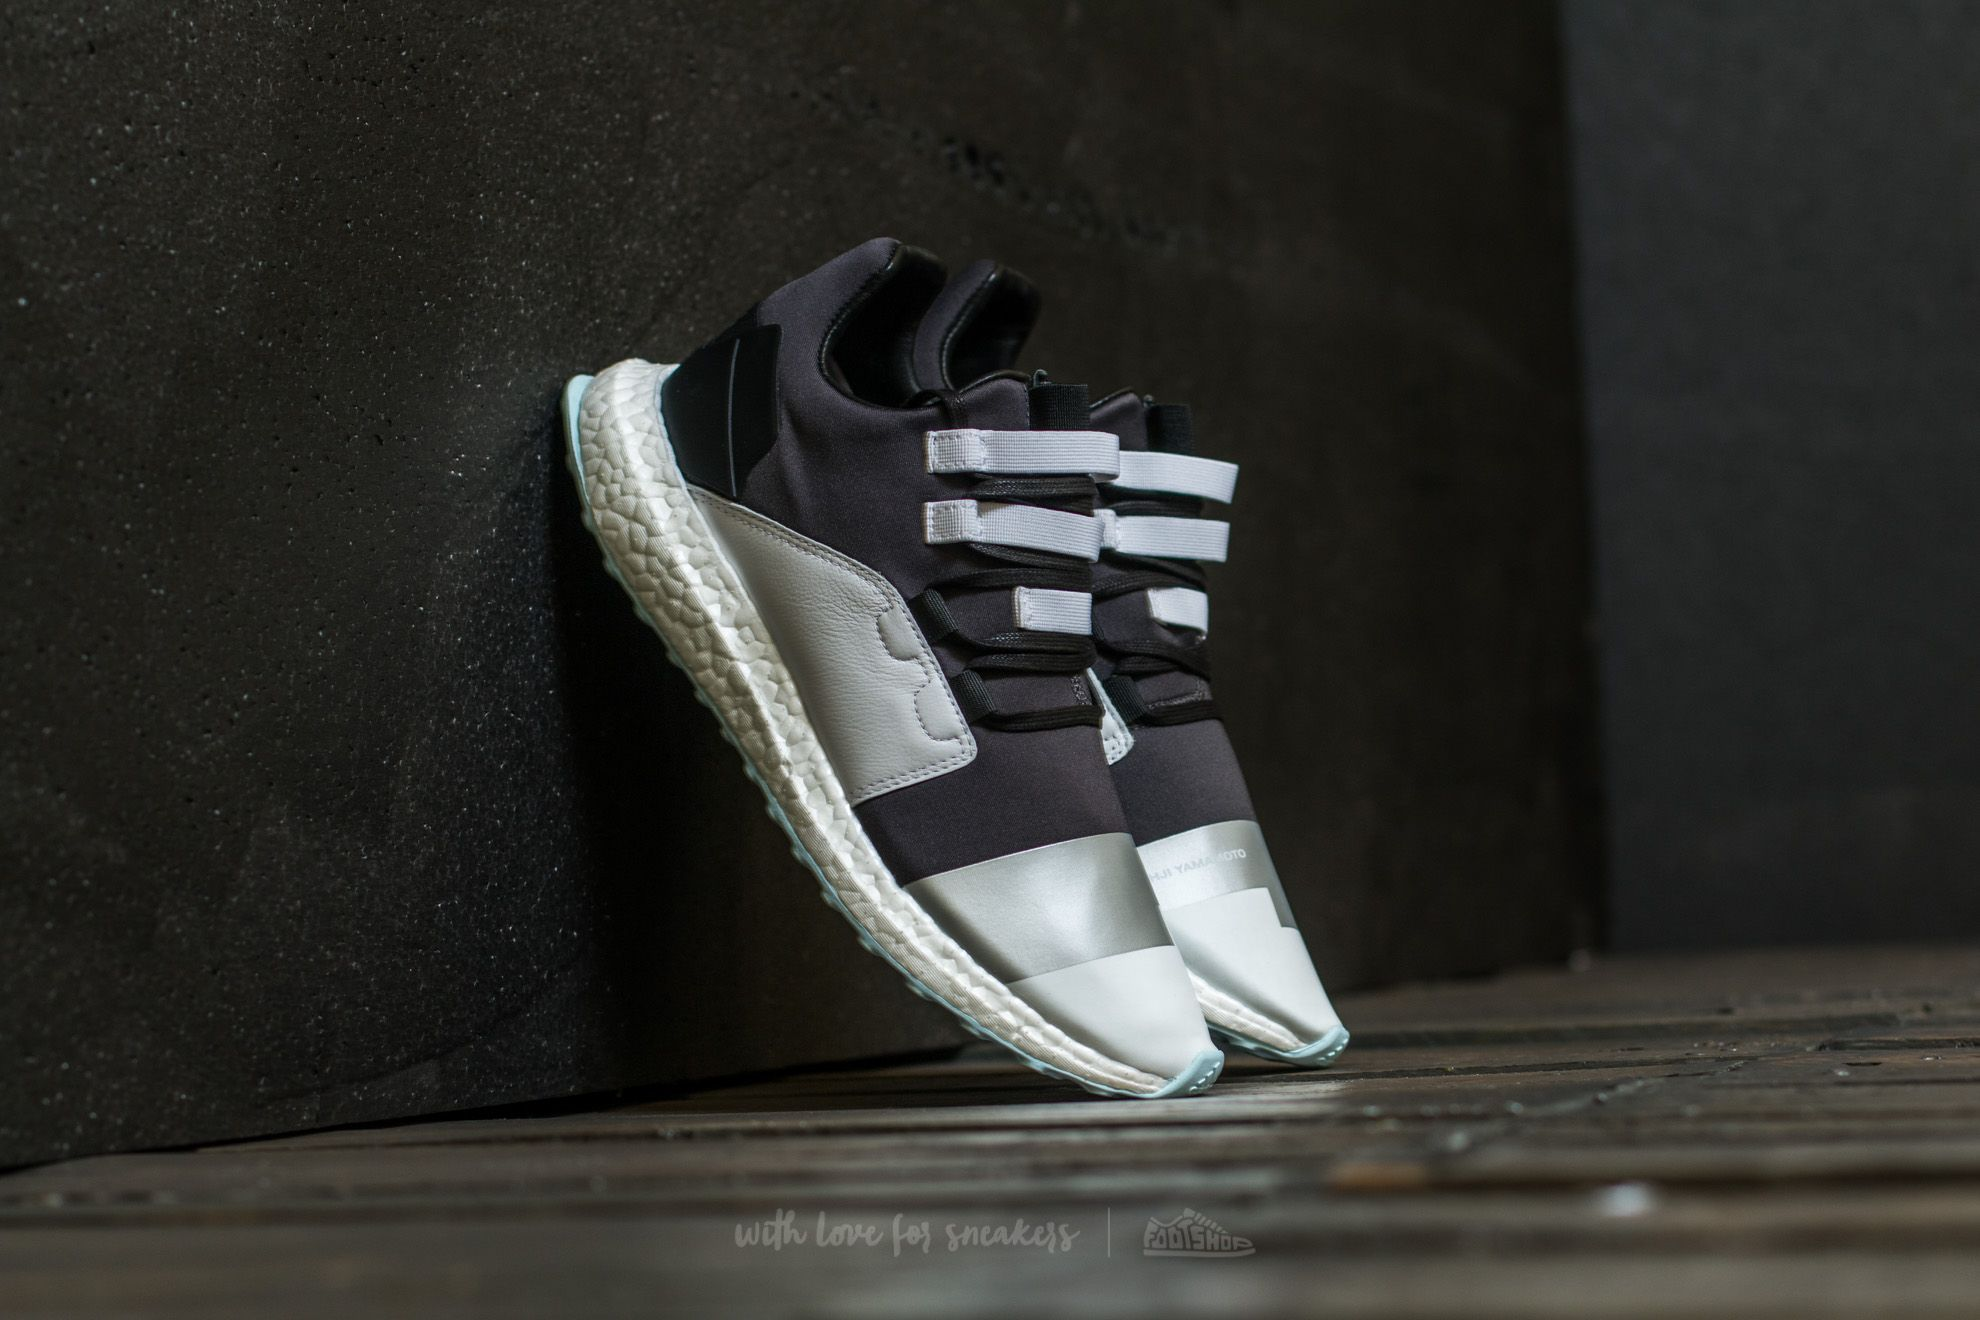 254e63dabb03 Y-3 Kozoko Low Core Black  Reflective Silver  Ftw White